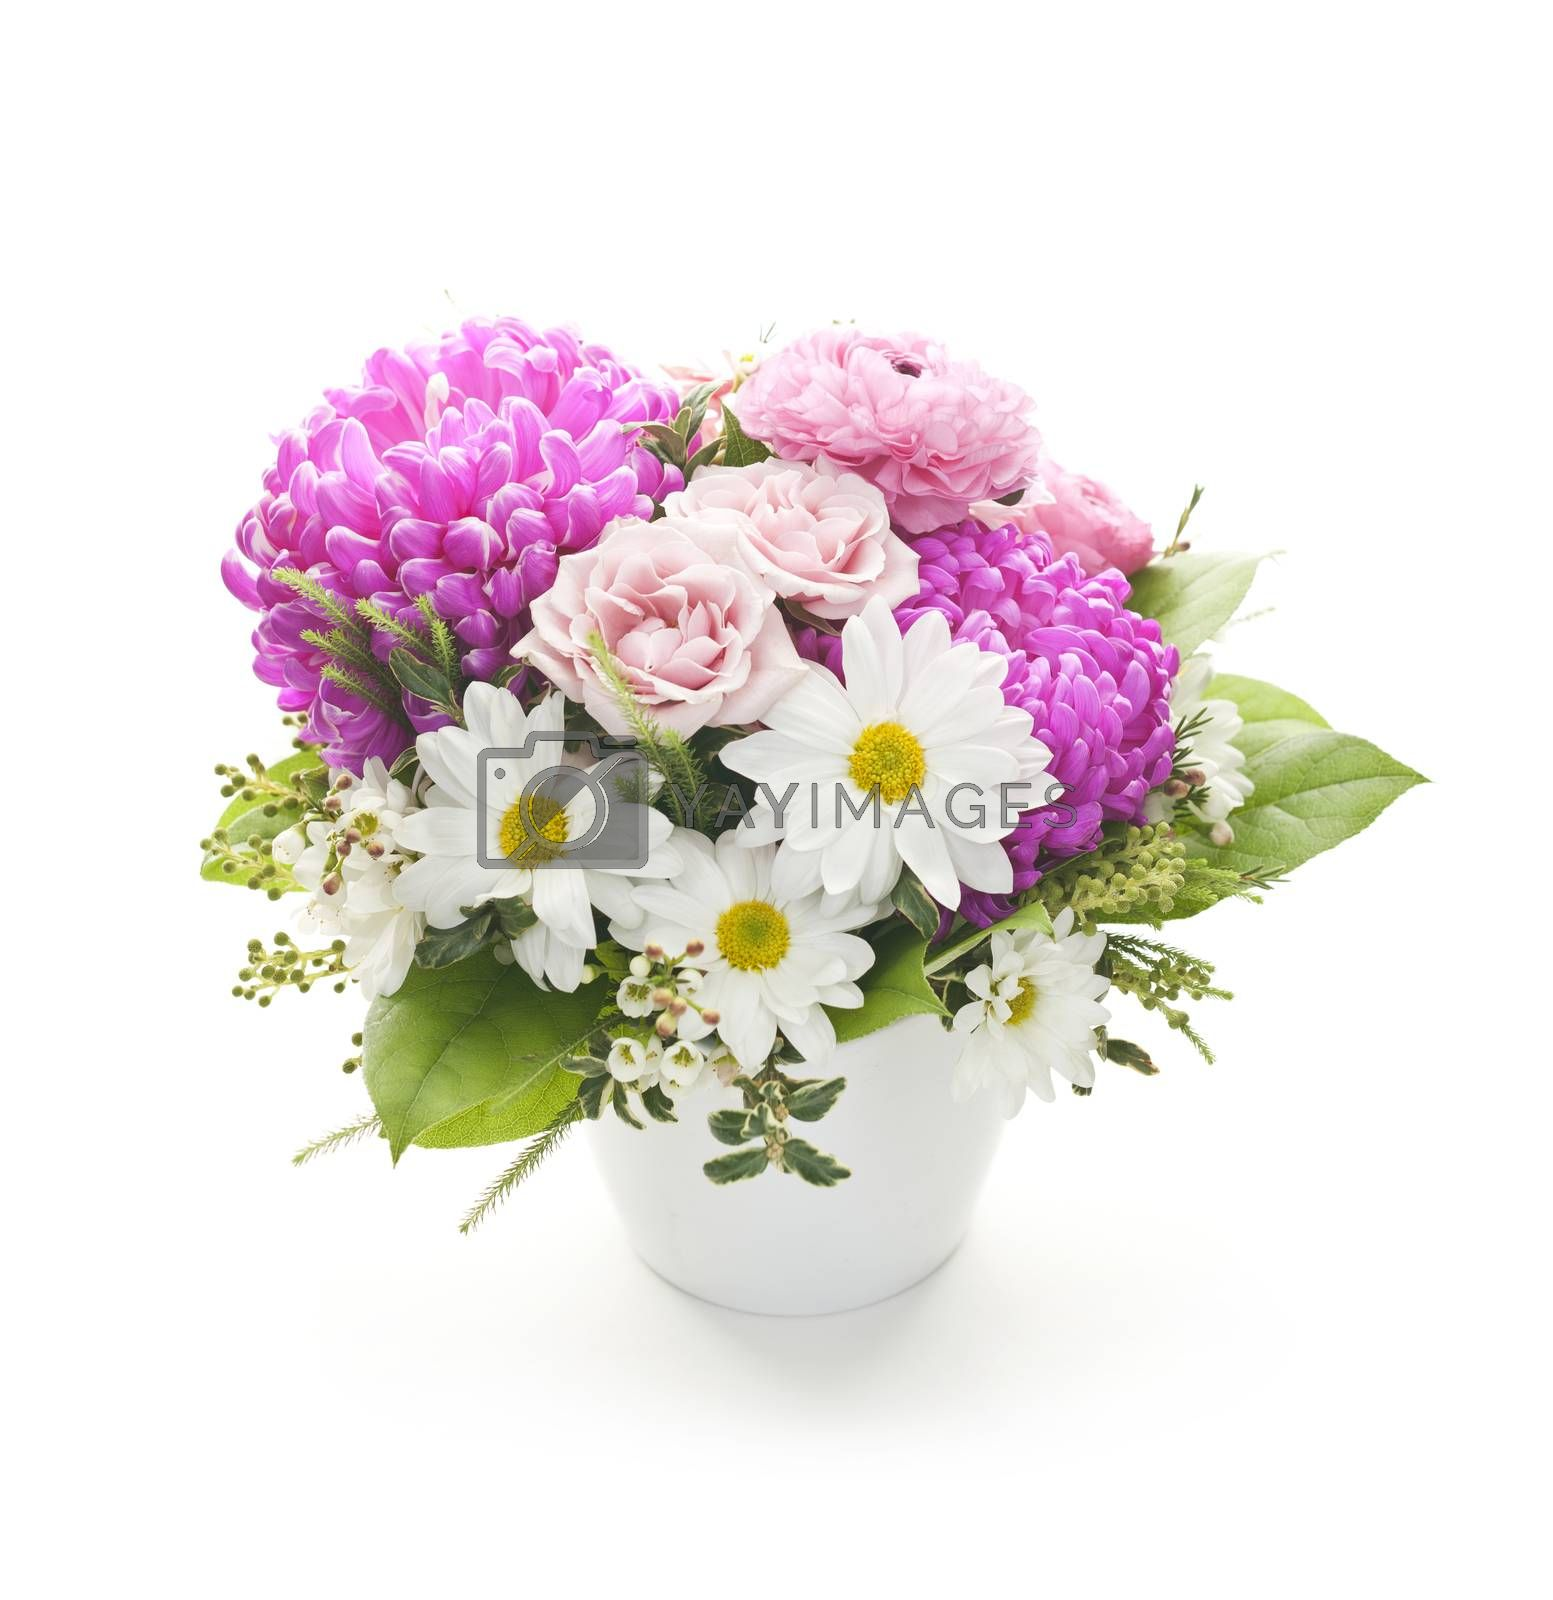 Bouquet of colorful flowers arranged in small vase on white background